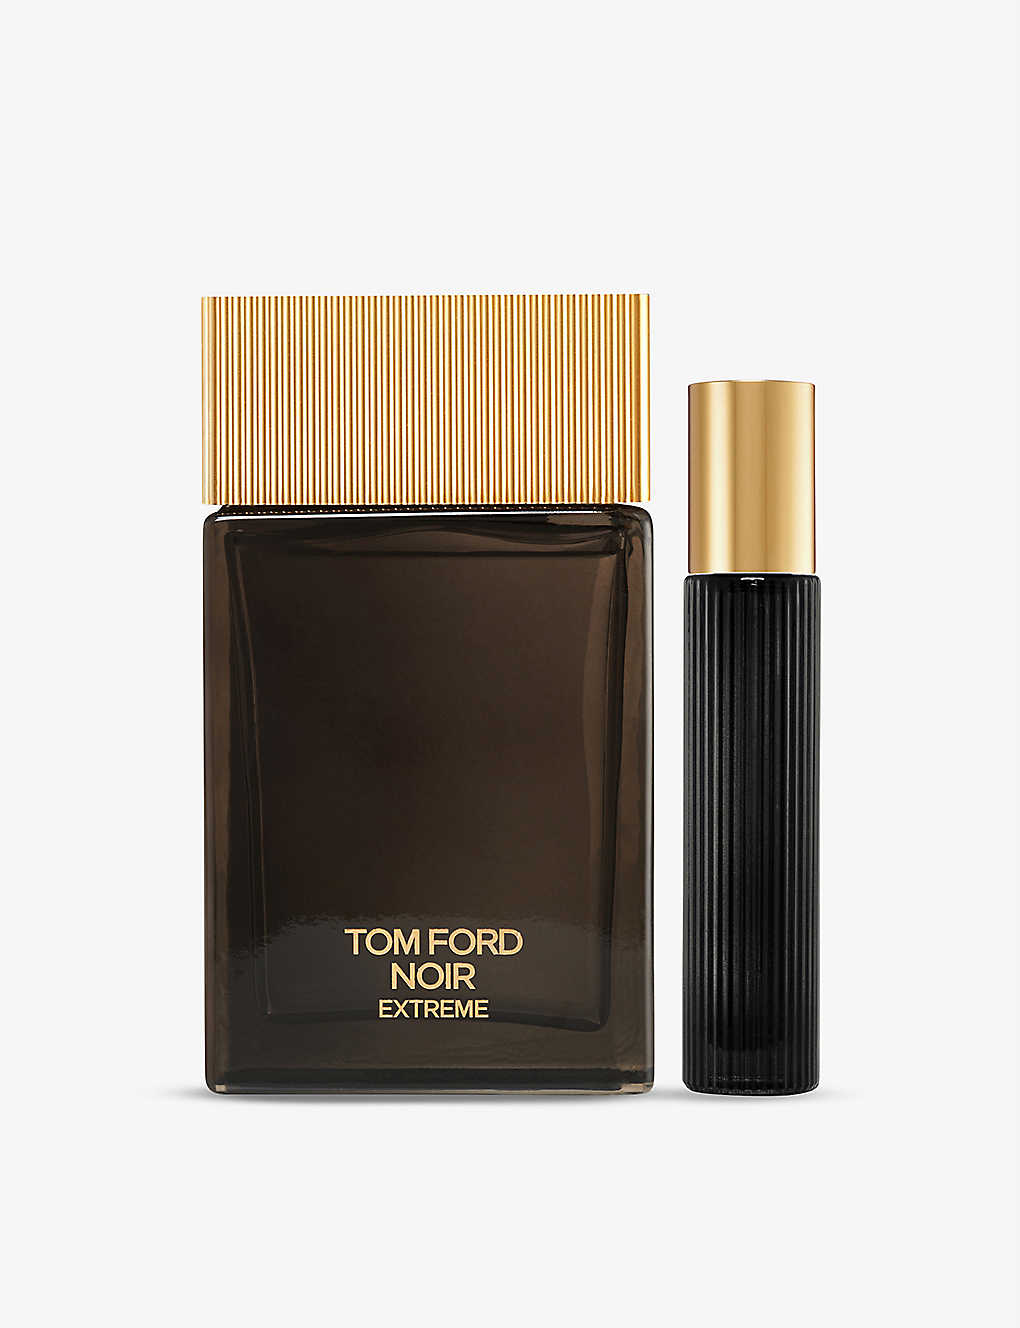 TOM FORD: Noir Extreme collection